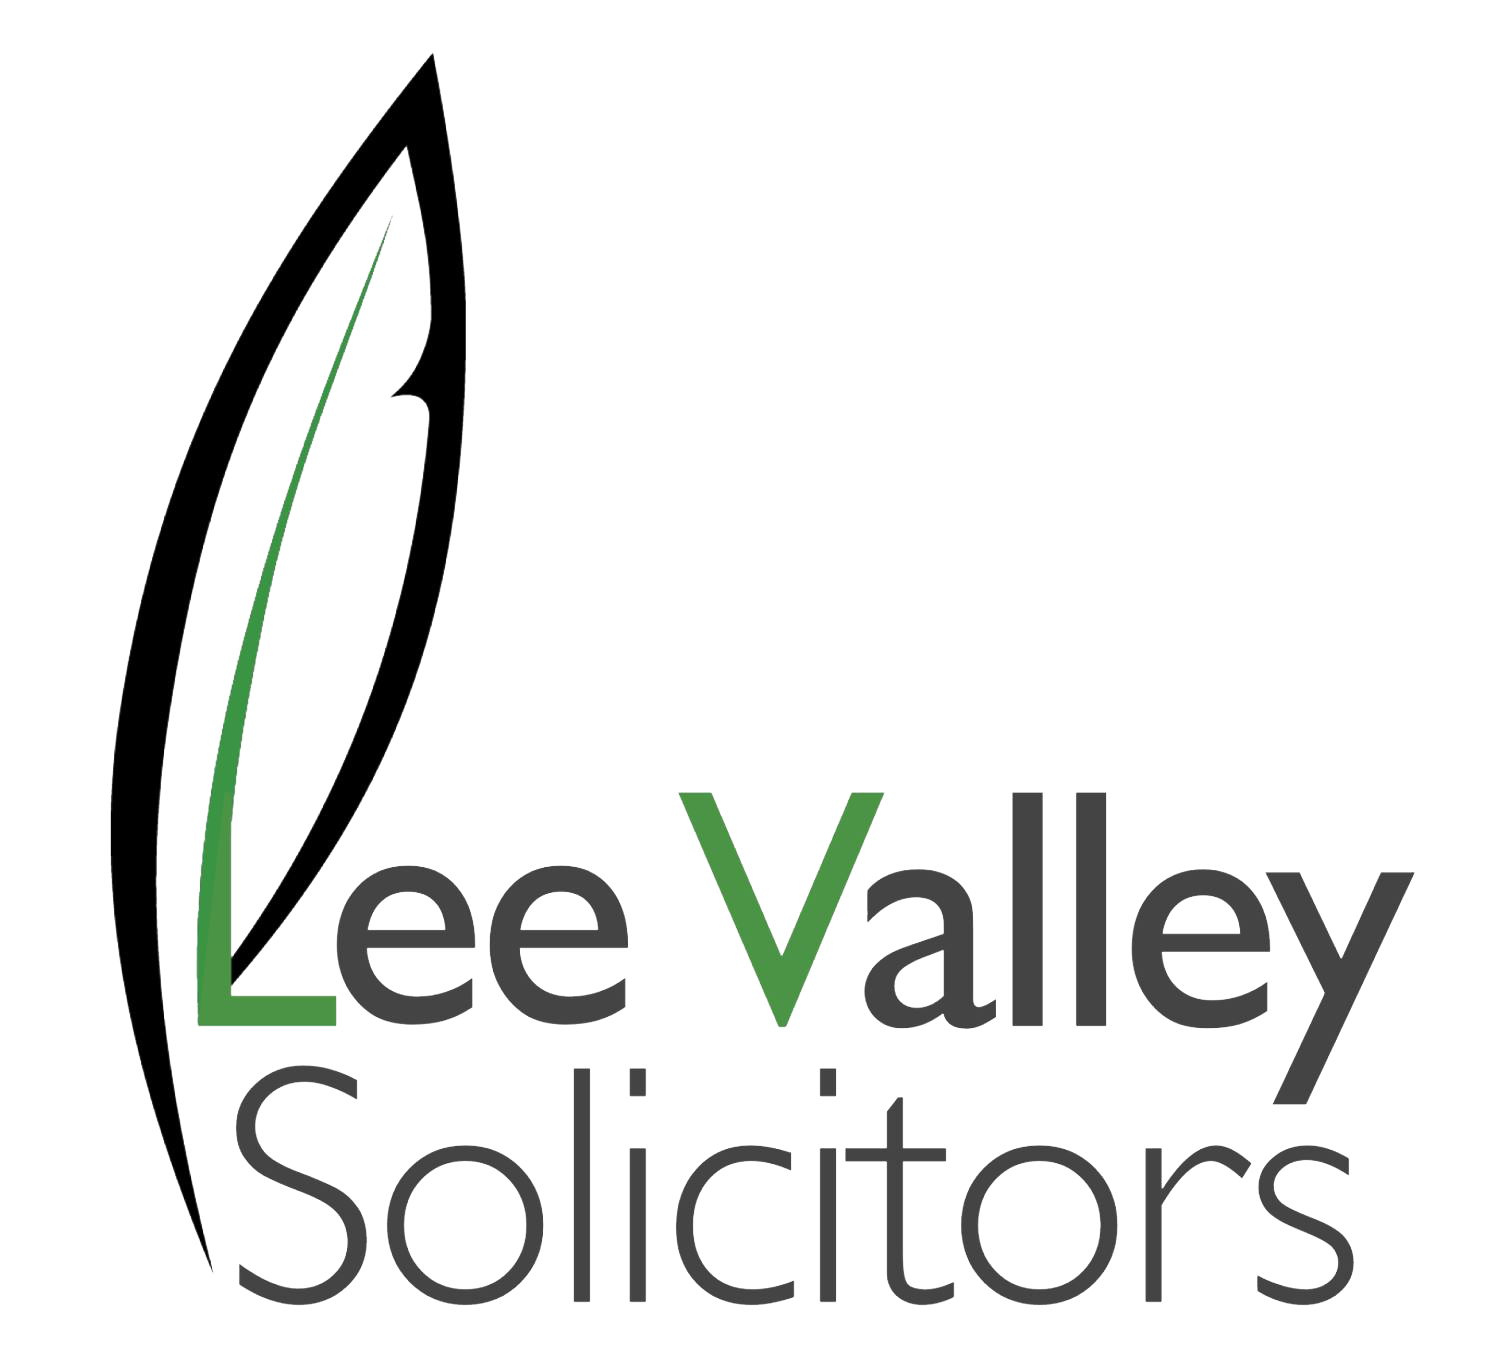 LeeValley Solicitors